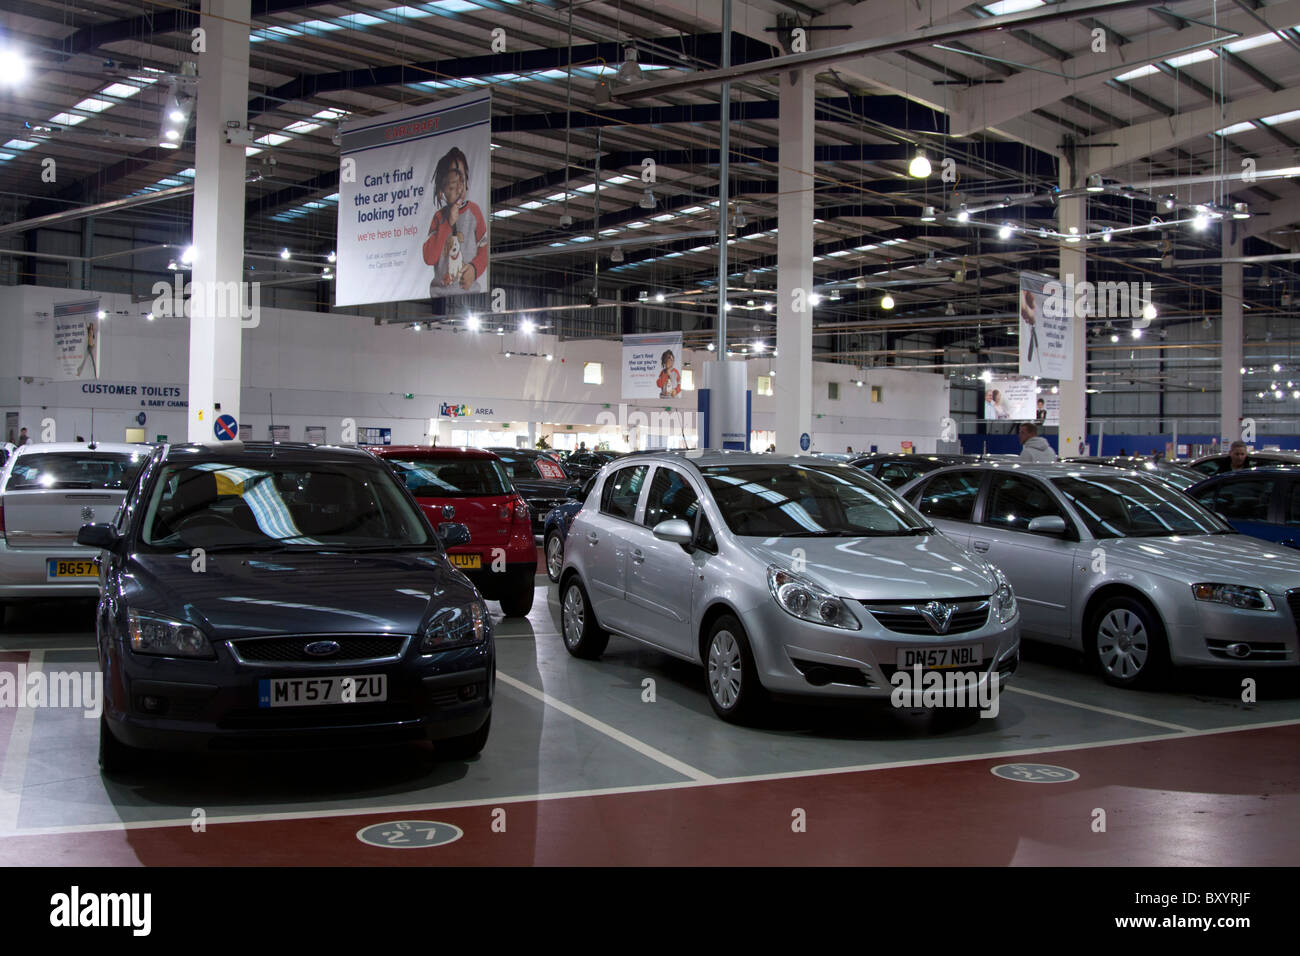 Used Car Dealers London >> Carcraft Used Car Showroom Enfield London Stock Photo 33802679